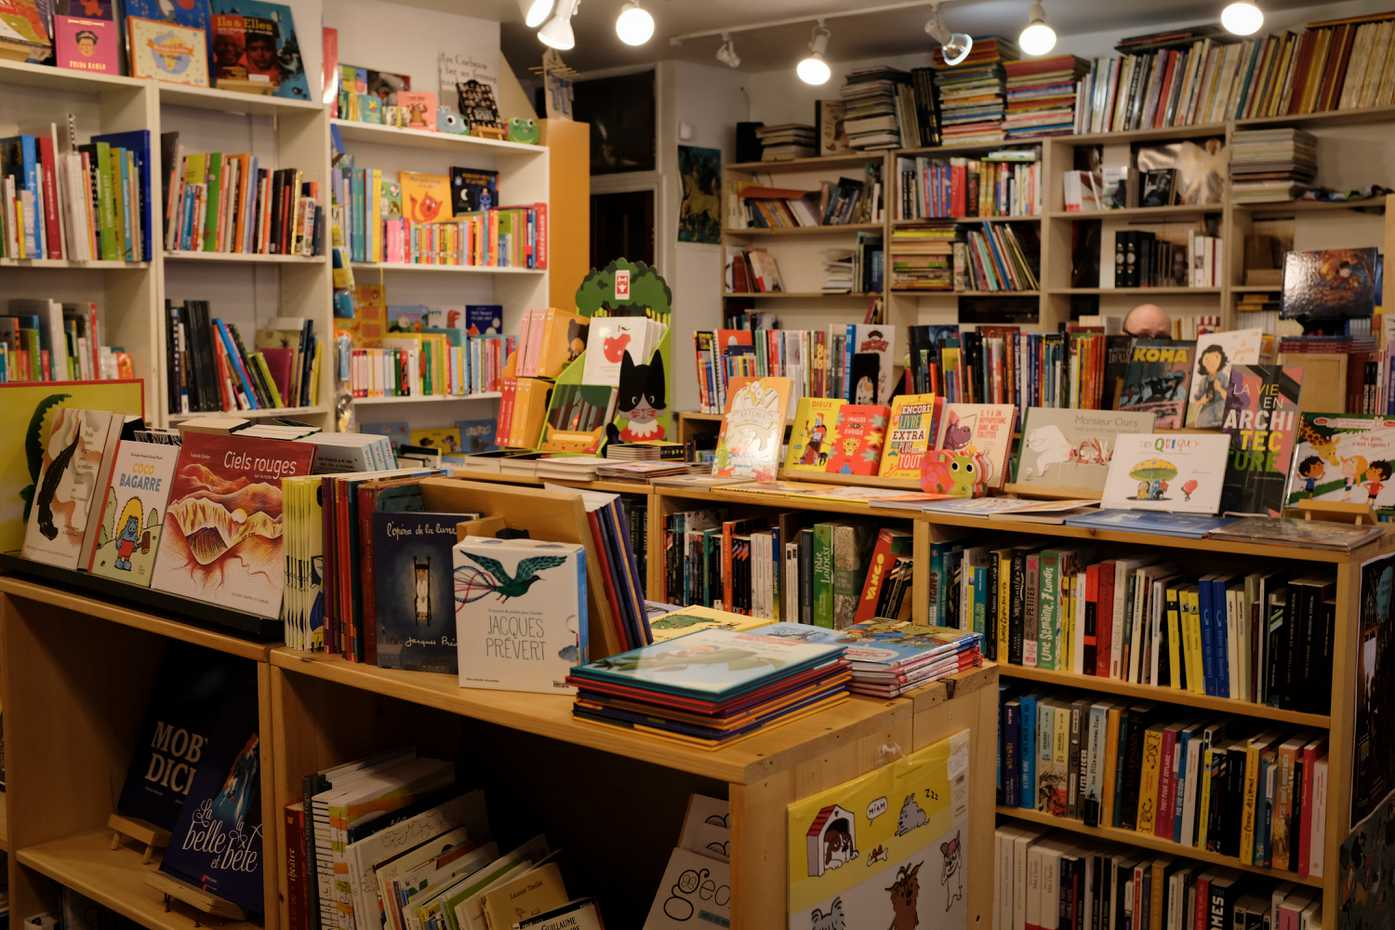 The children's section of bookstore